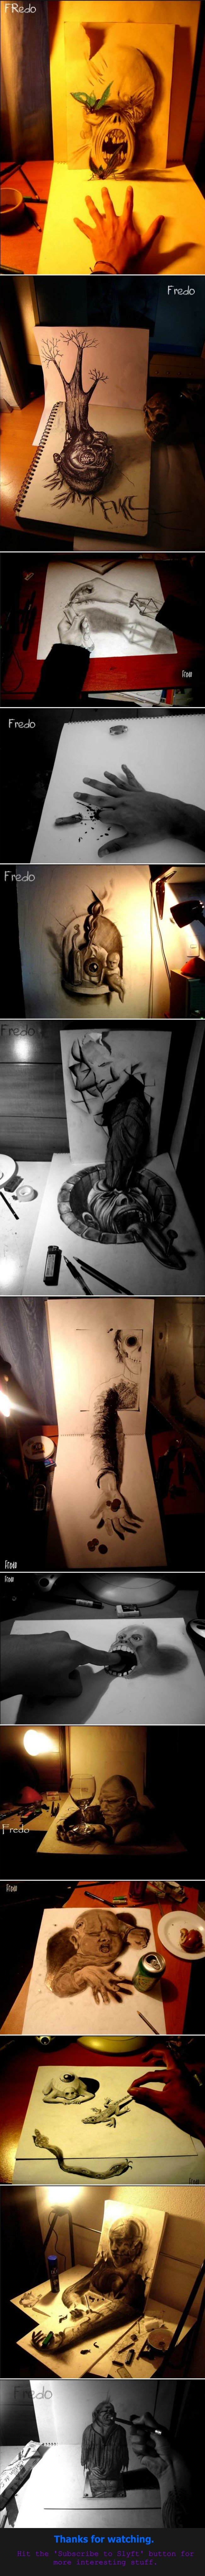 Incredible and Creepy 3D Drawings. Drawings by the artist Fredo. Subscribe for more cool stuff .. Where's the funny?